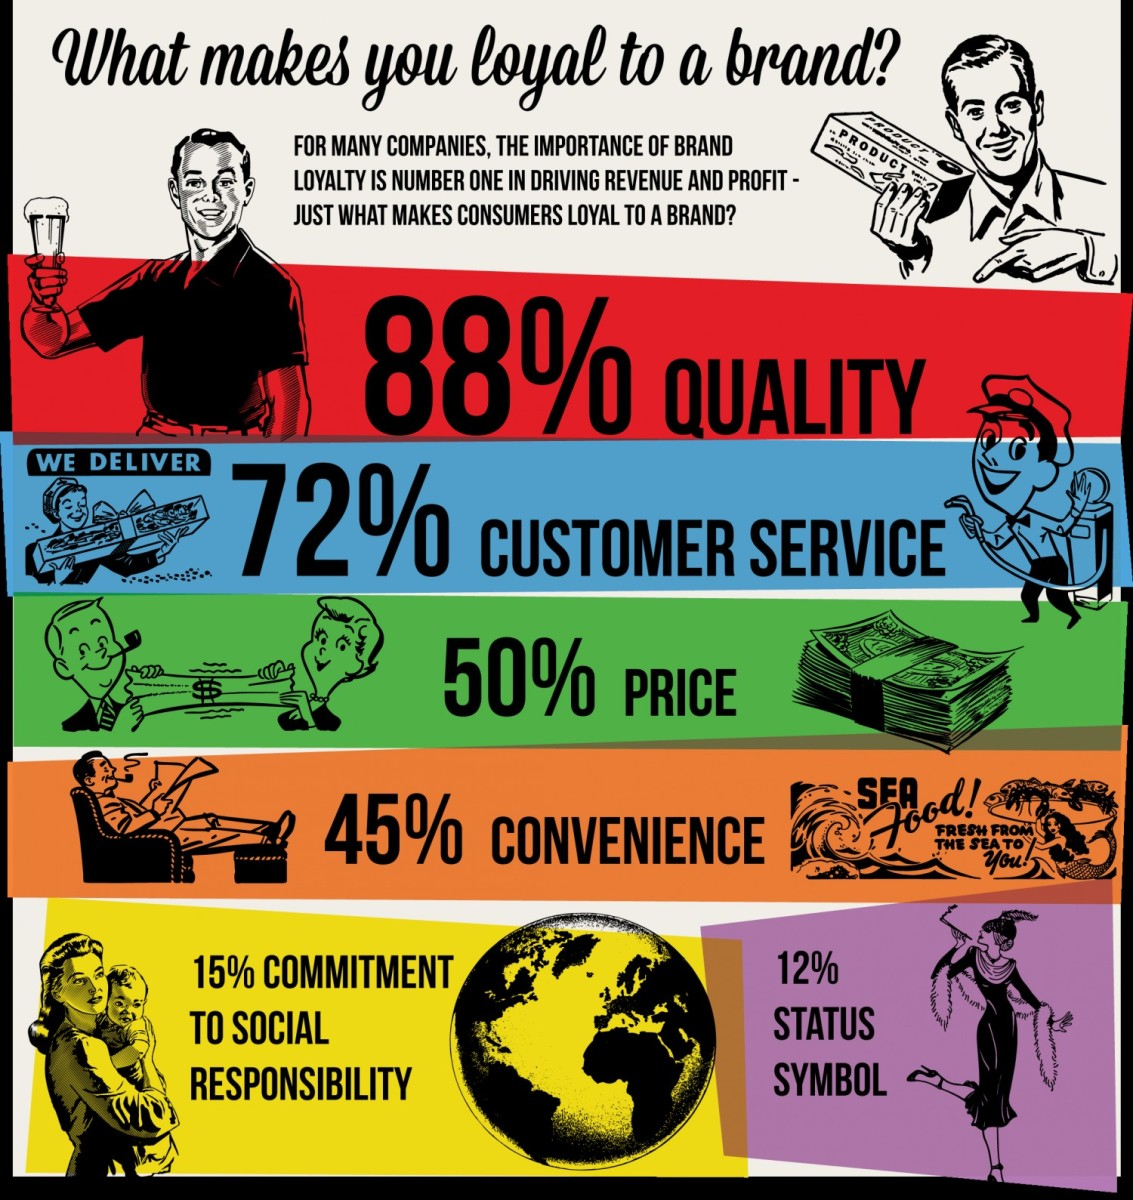 MMPR FOCUS: WHAT MAKES BRAND LOYALTY?